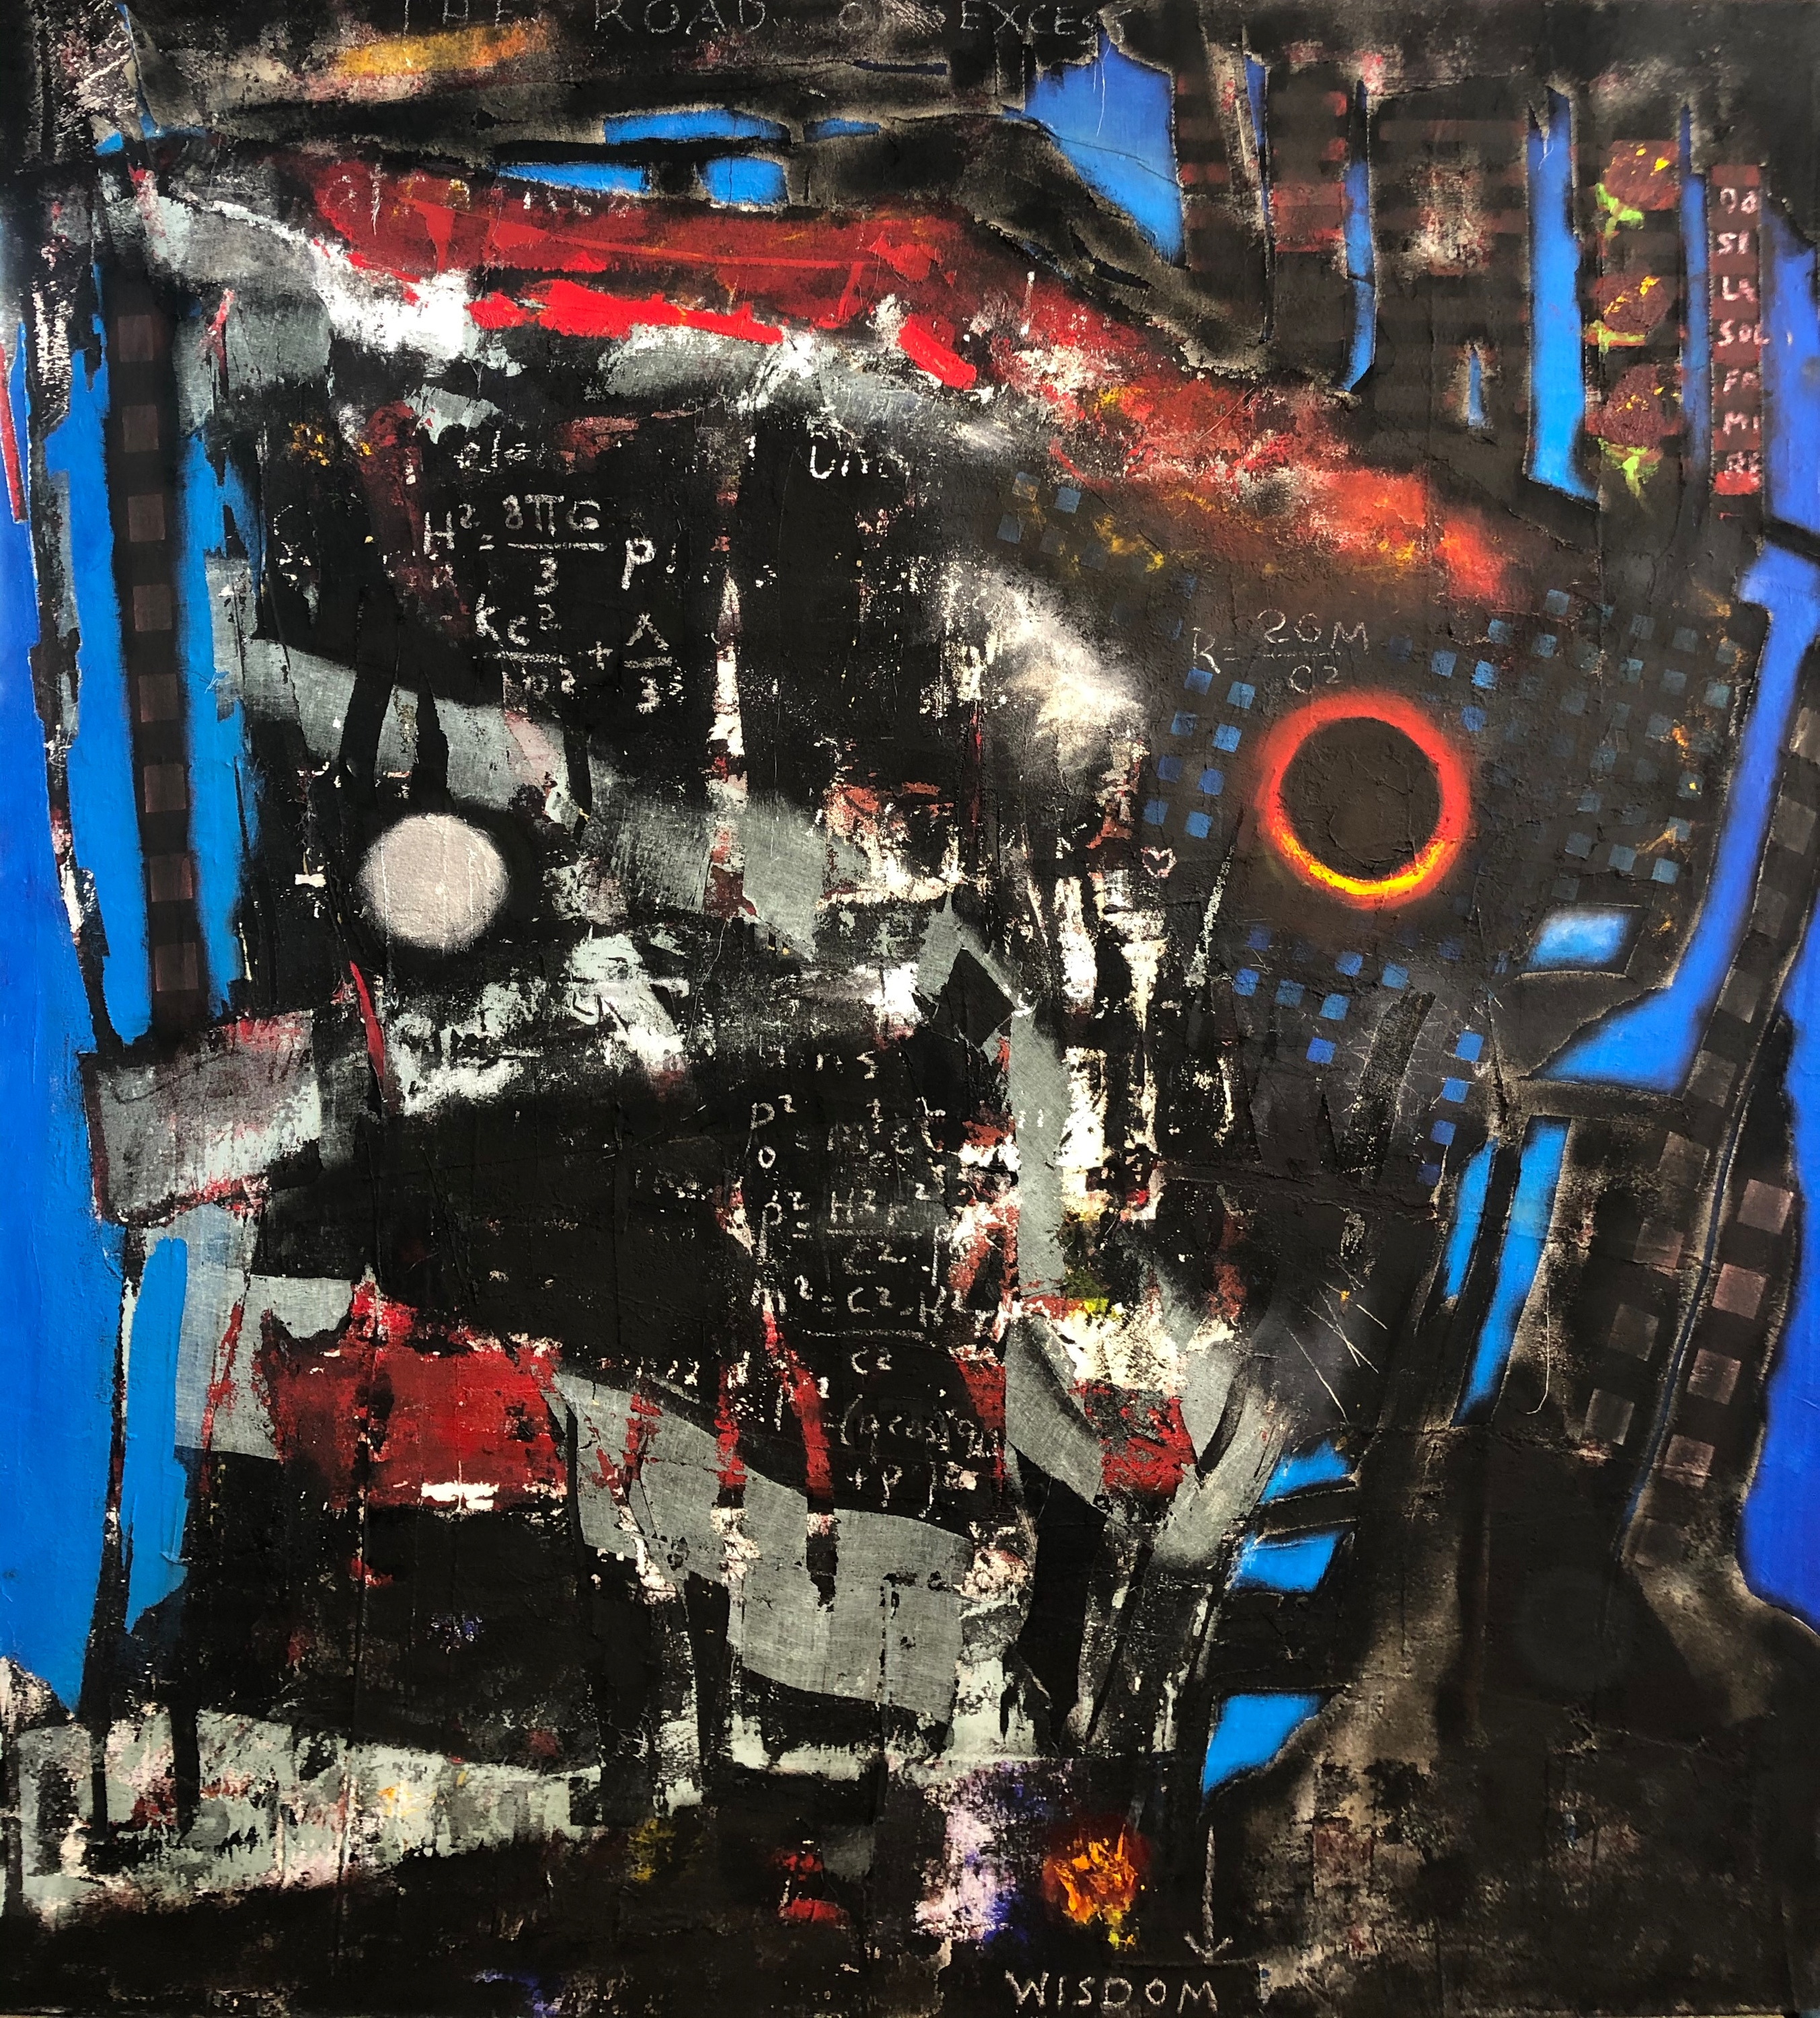 The road of excess oil gauze canvas 6660 kavpgr